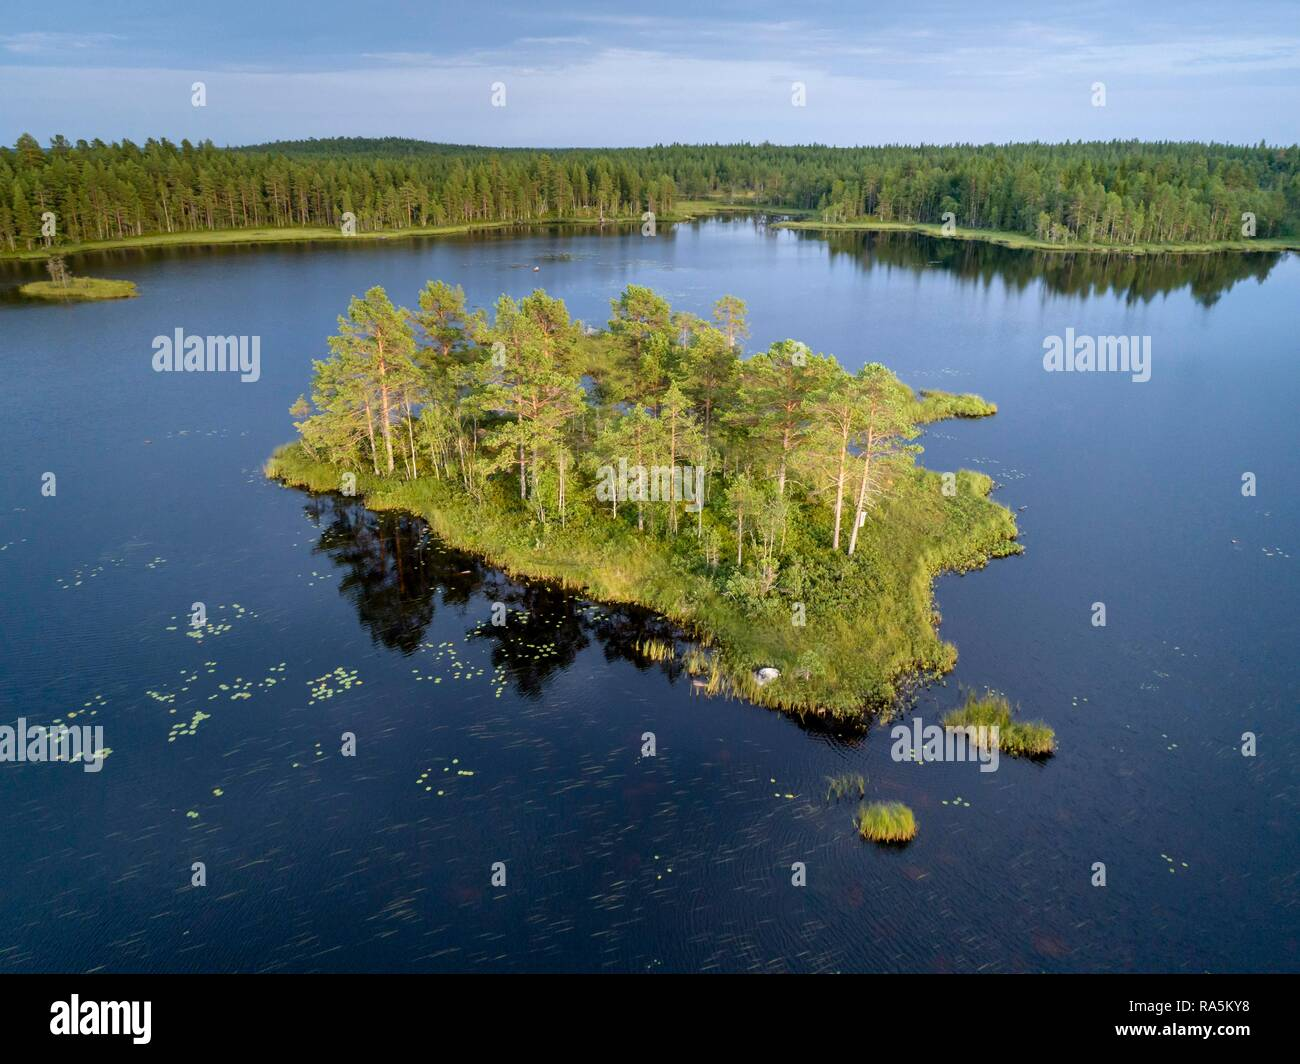 Drone shot, boreal, arctic conifers on small island in lake, water lily leaves, Jävre, Norbottens län, Sweden Stock Photo